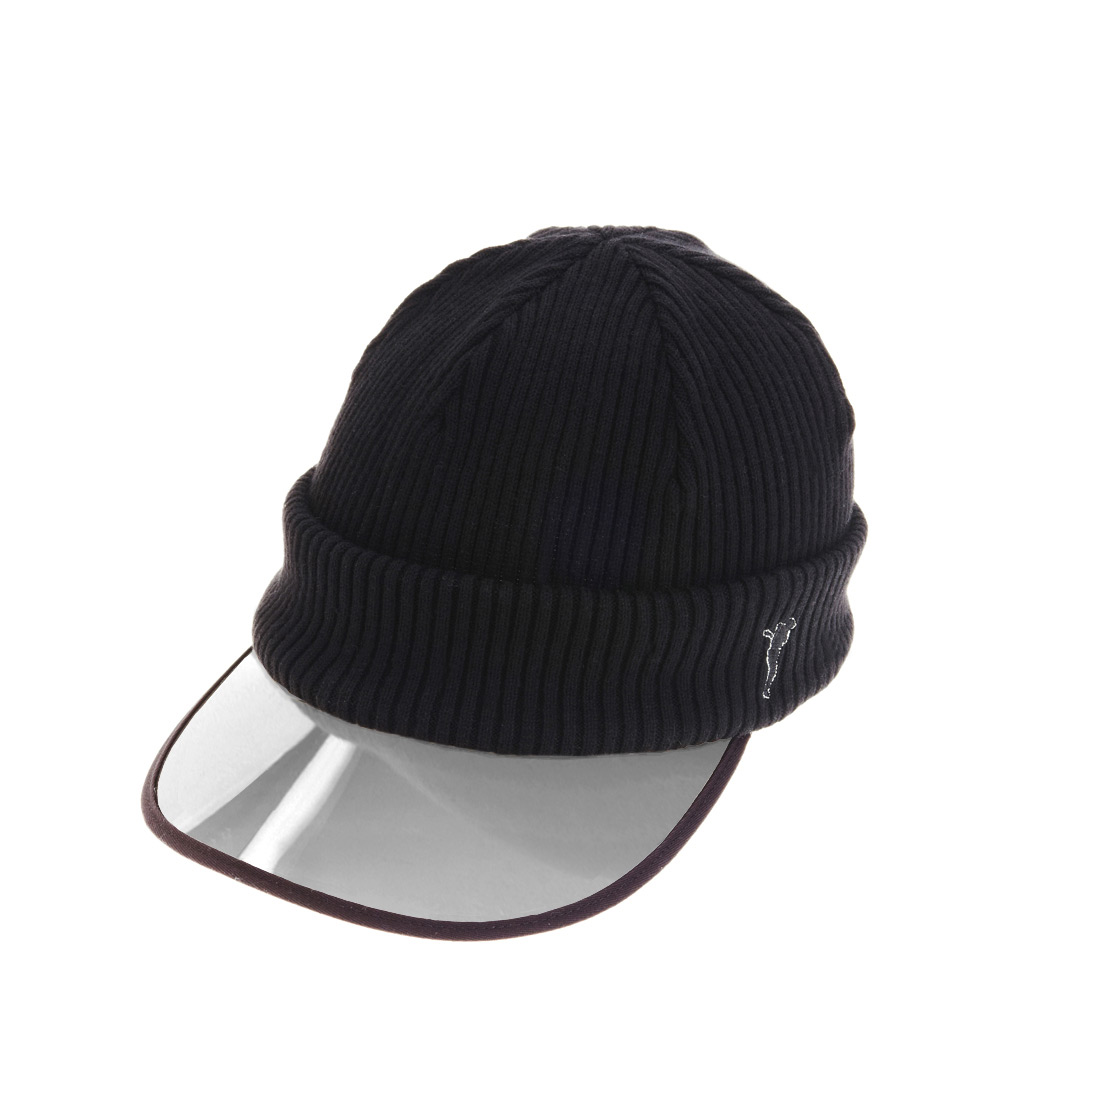 Knit cap with transparent peak